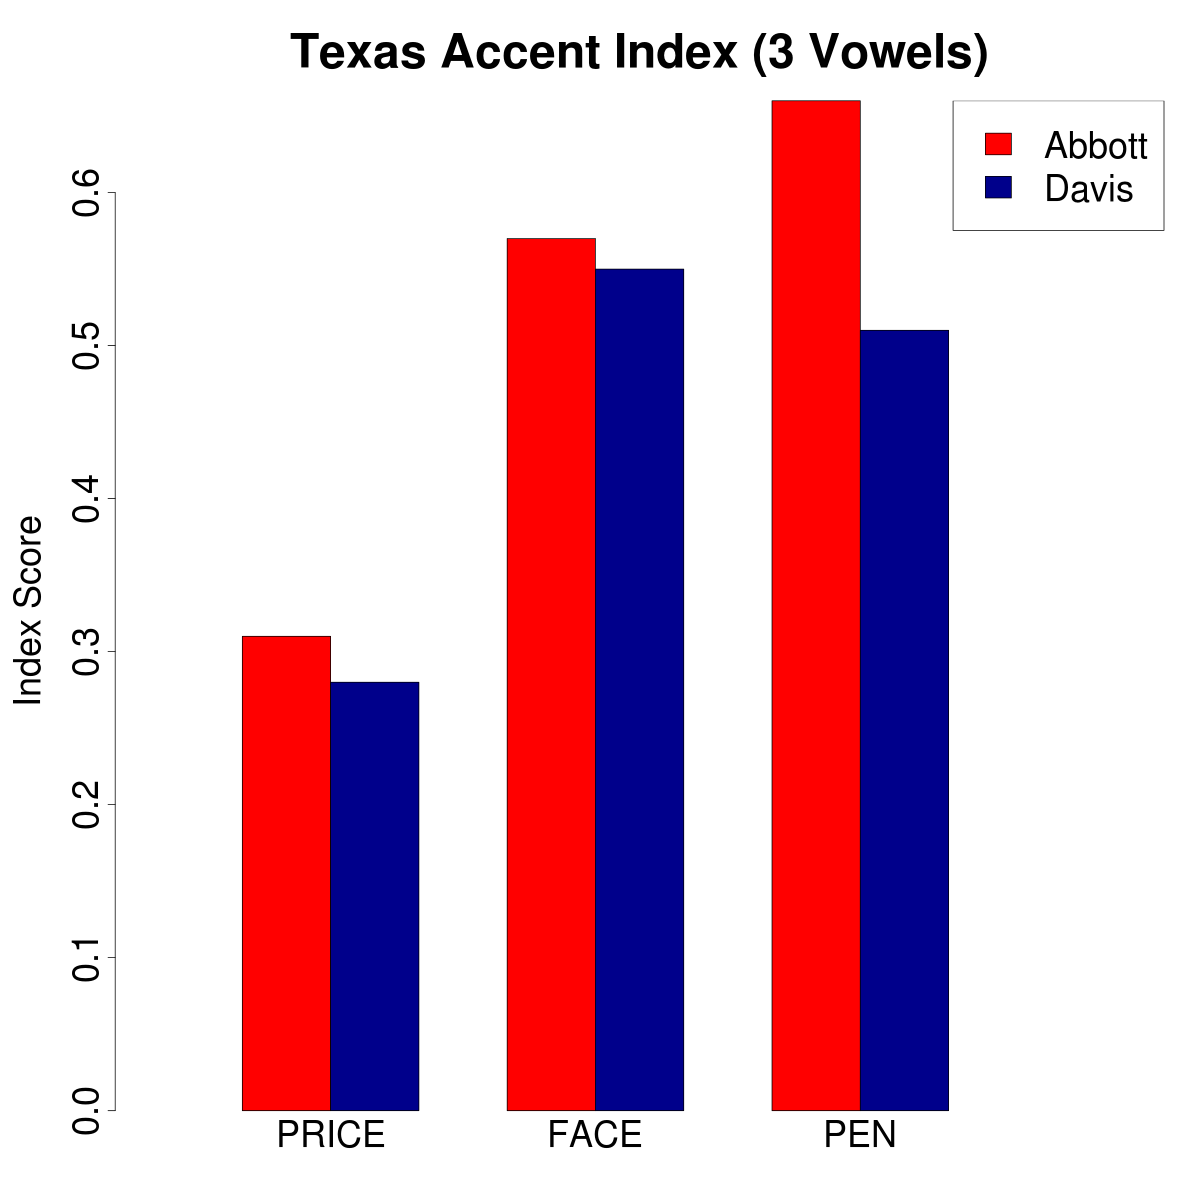 Figure 1. Texas *Accent Index* for the PRICE, FACE, and PEN vowels. *Higher* values indicate more local-sounding realizations of these vowels.